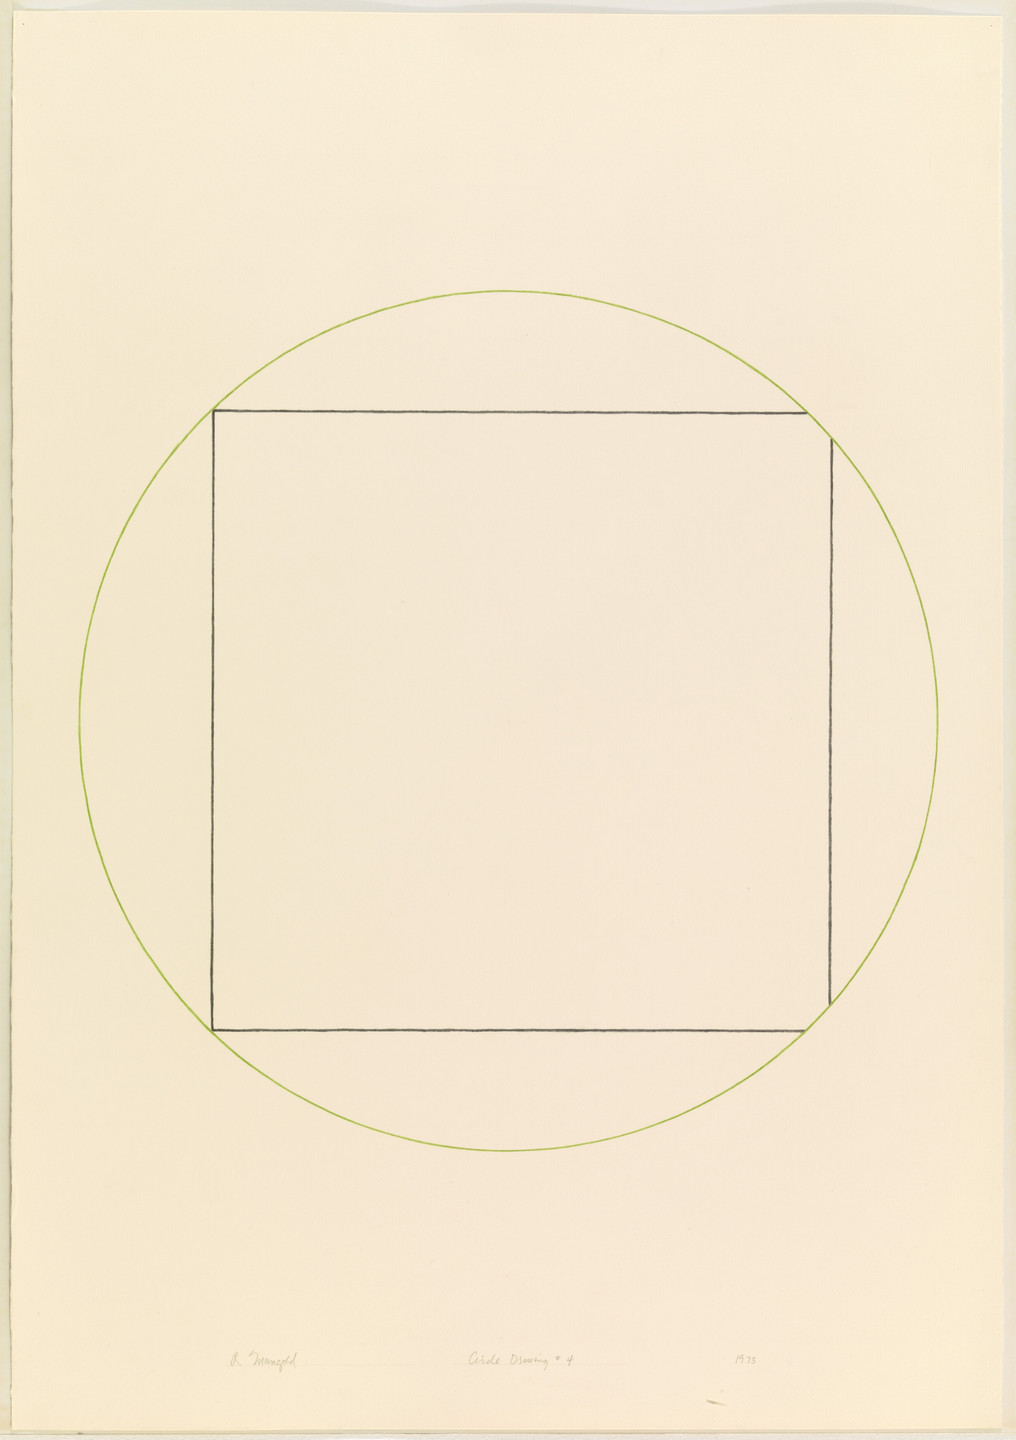 Robert Mangold. Circle Drawing #4. 1973